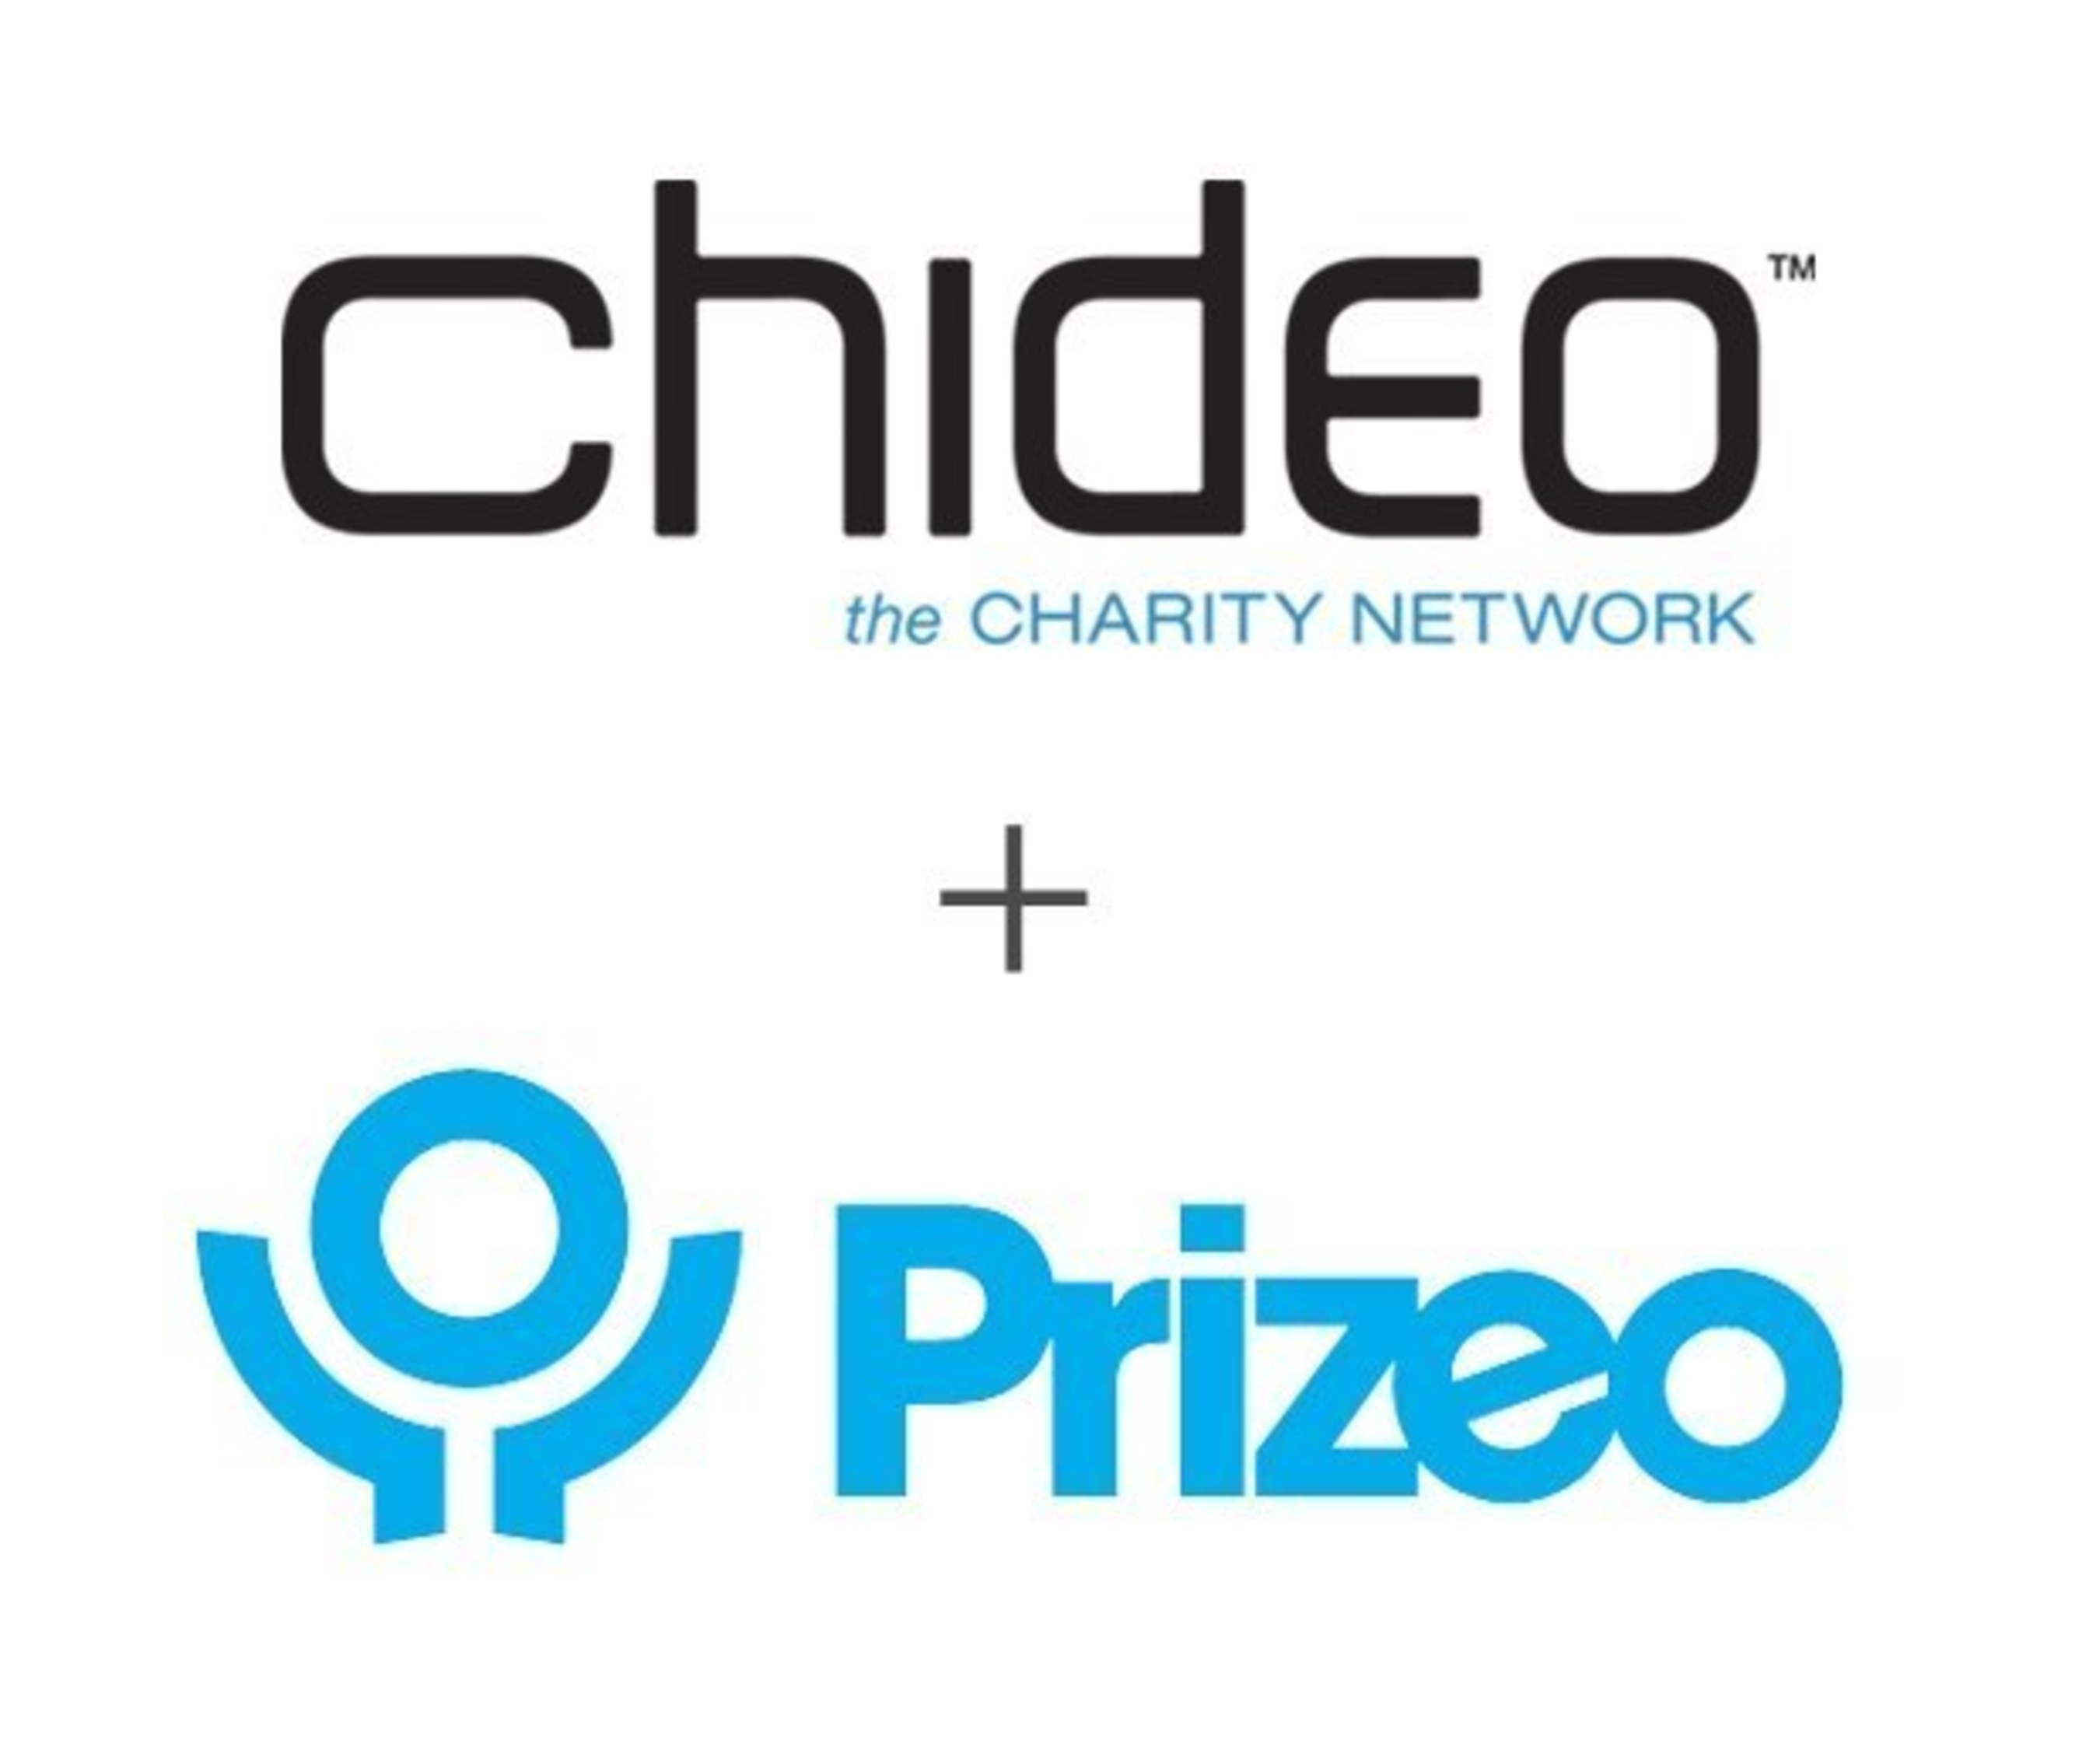 Entrepreneur And Chideo Founder Todd Wagner Acquires Prizeo, A Celebrity-Based Charity Platform